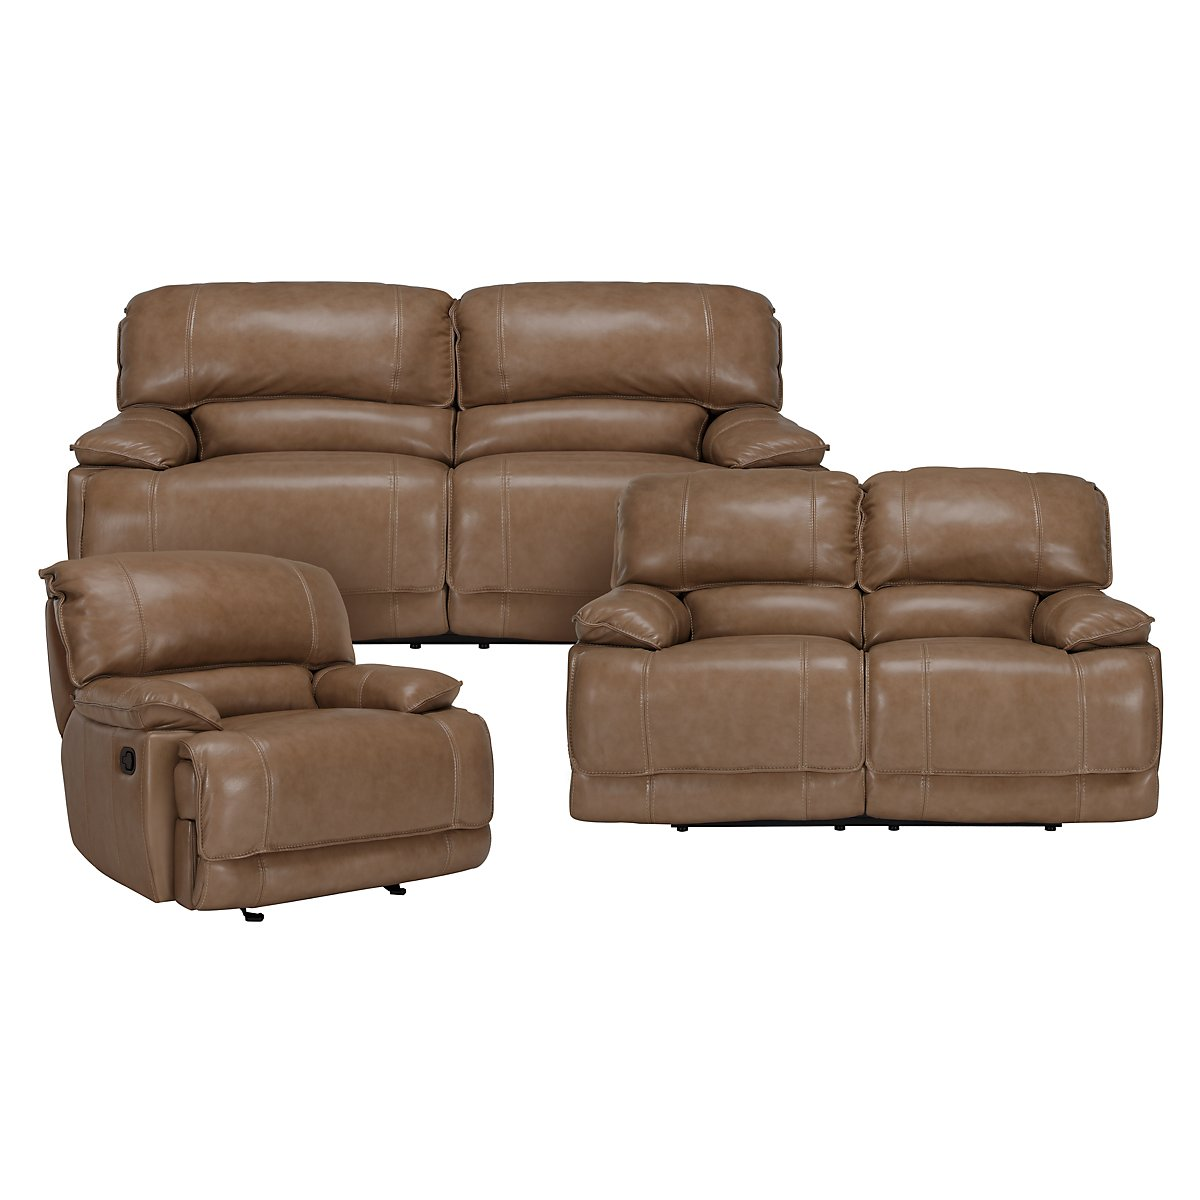 Benson Dk Taupe Leather & Vinyl Power Reclining Living Room